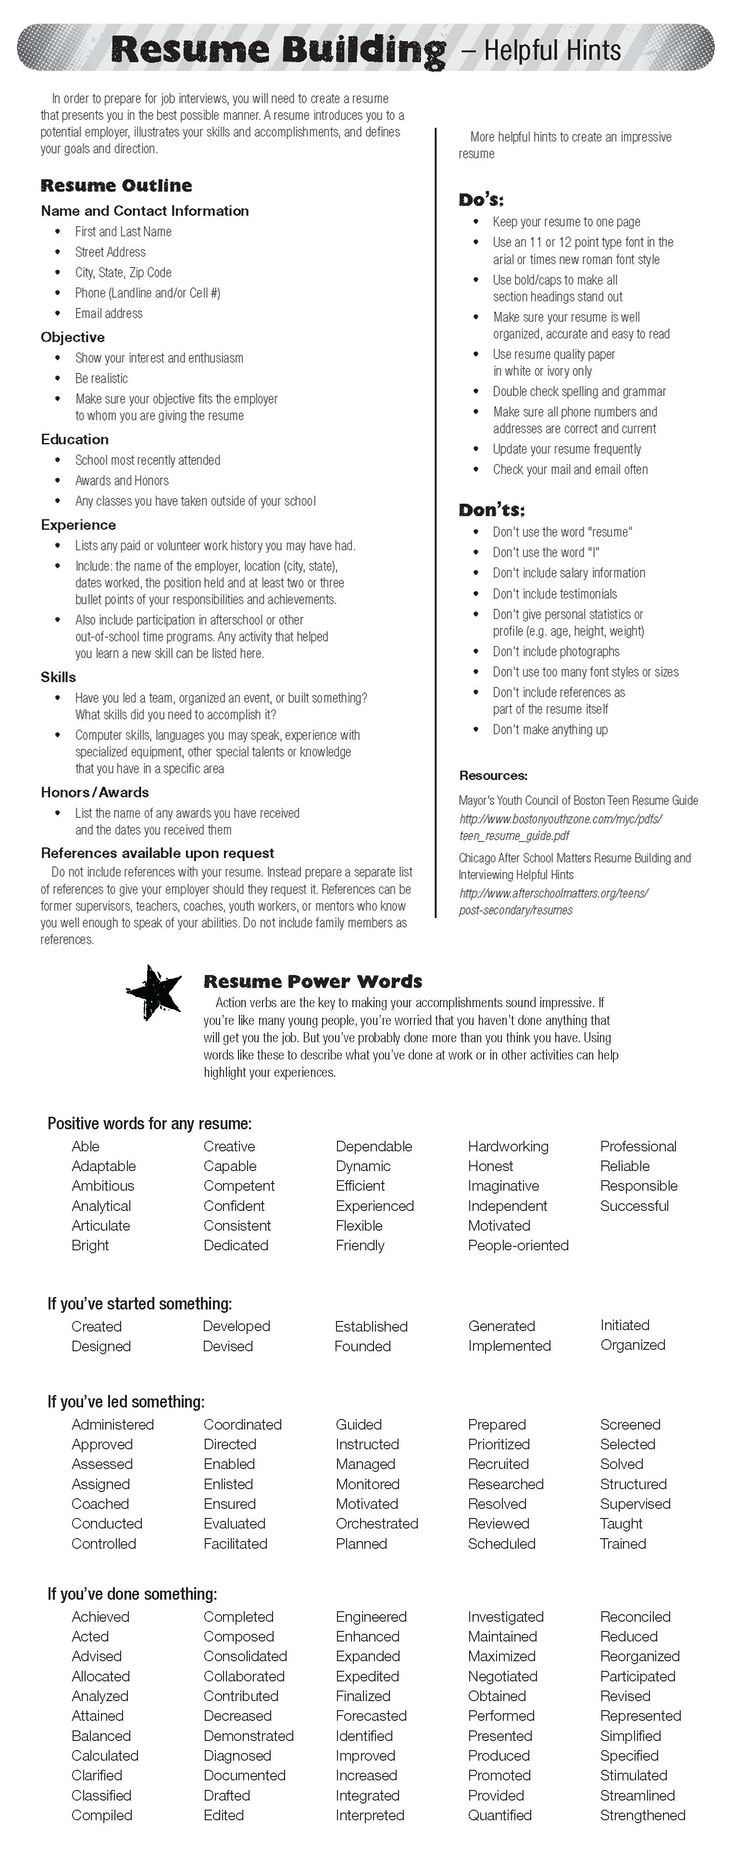 Opposenewapstandardsus  Personable  Ideas About Resume On Pinterest  Cv Format Resume Cv And  With Heavenly  Ideas About Resume On Pinterest  Cv Format Resume Cv And Resume Templates With Extraordinary Bartender Resume Template Also Executive Secretary Resume In Addition Resume Examples For Medical Assistant And Science Teacher Resume As Well As Post A Resume Additionally Receptionist Resume Samples From Pinterestcom With Opposenewapstandardsus  Heavenly  Ideas About Resume On Pinterest  Cv Format Resume Cv And  With Extraordinary  Ideas About Resume On Pinterest  Cv Format Resume Cv And Resume Templates And Personable Bartender Resume Template Also Executive Secretary Resume In Addition Resume Examples For Medical Assistant From Pinterestcom